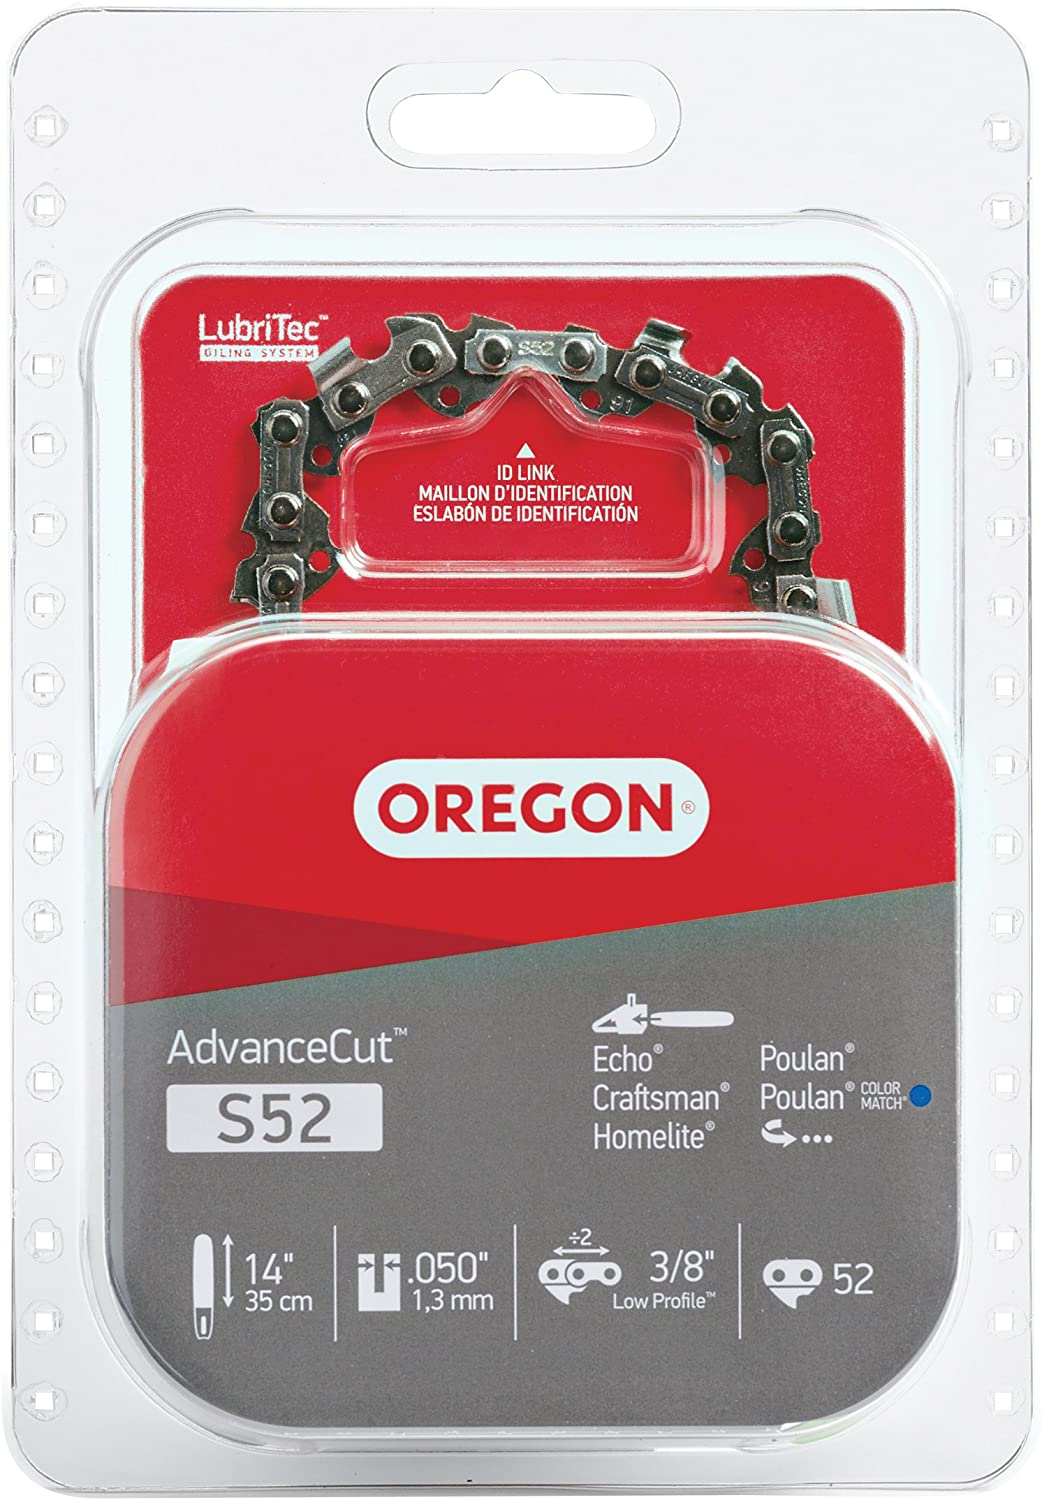 Oregon S52 AdvanceCut Chainsaw Chain for 14-Inch Bars, Fits Craftsman, Echo, Homelite, Poulan, 52 Drive Links